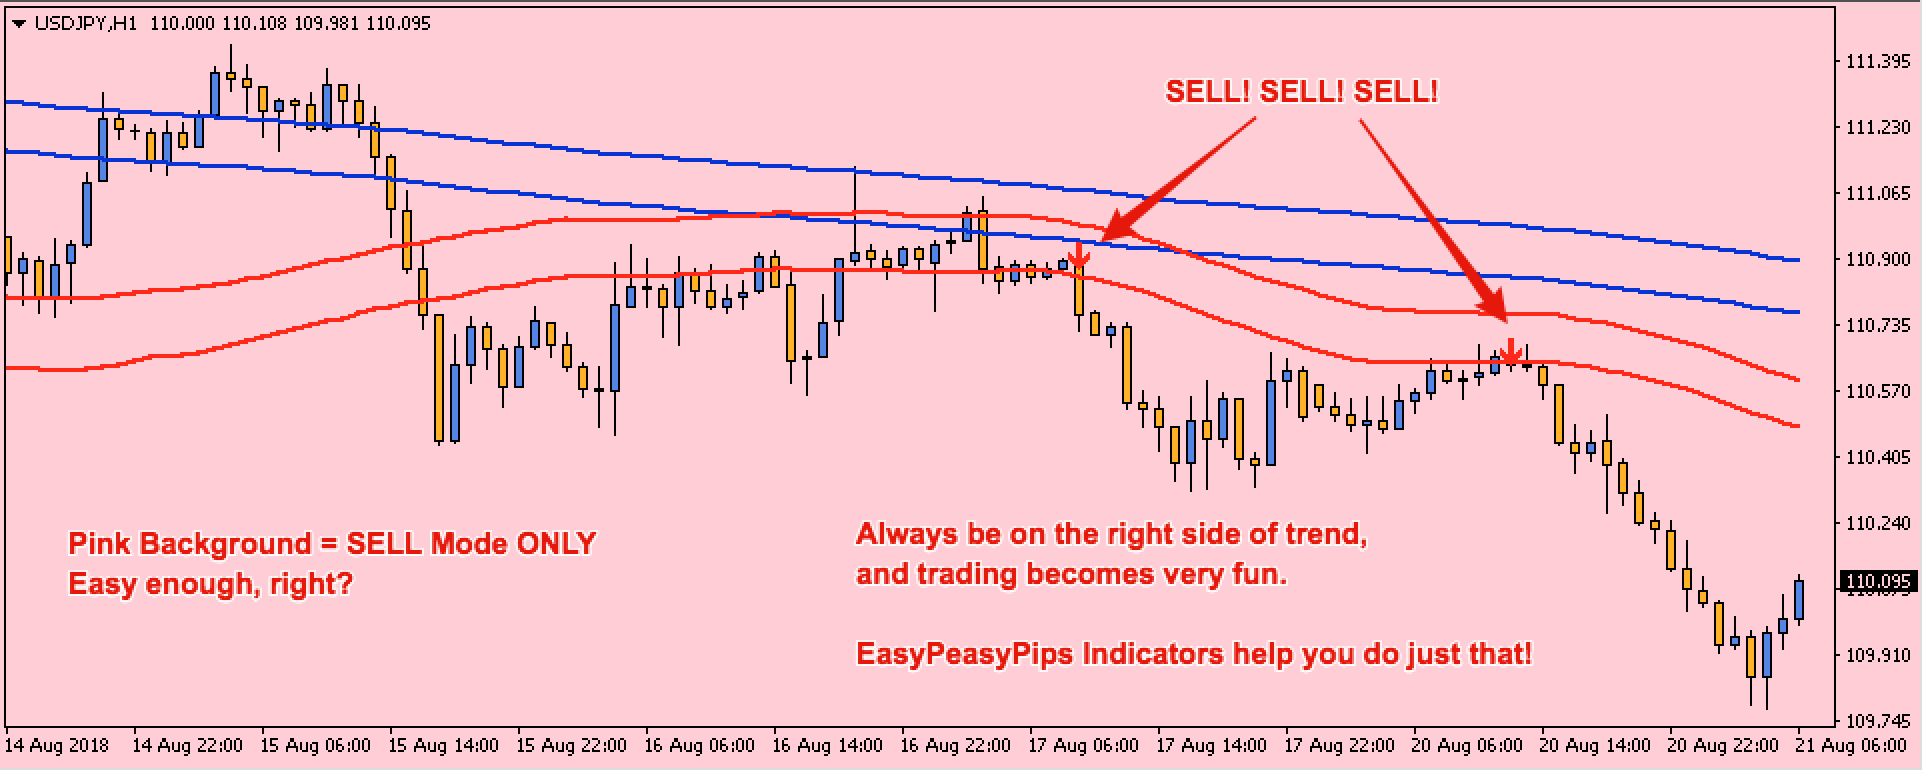 EasyPeasyPips - USDJPY - The Sell Signal is just so Clear!